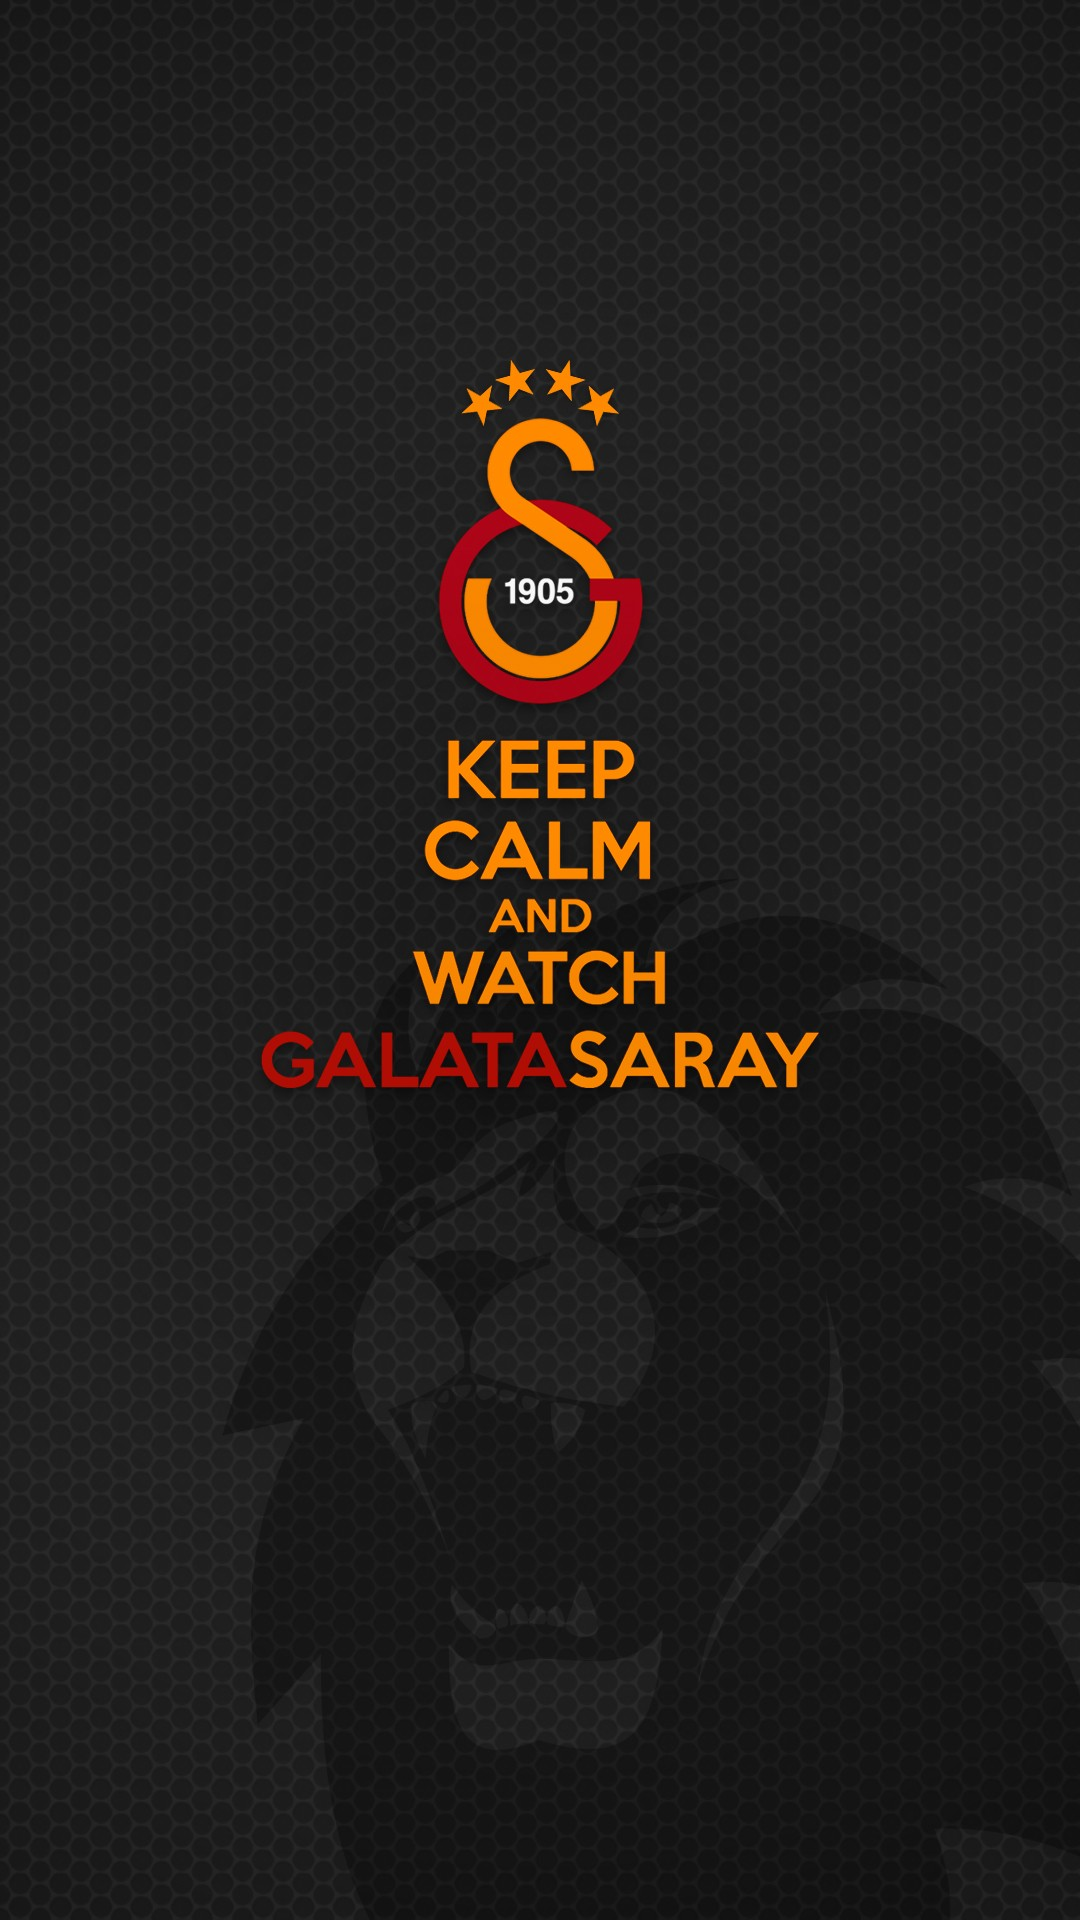 Wallpaper Hp Iphone X Footballers Galatasaray S K Soccer Wallpapers Hd